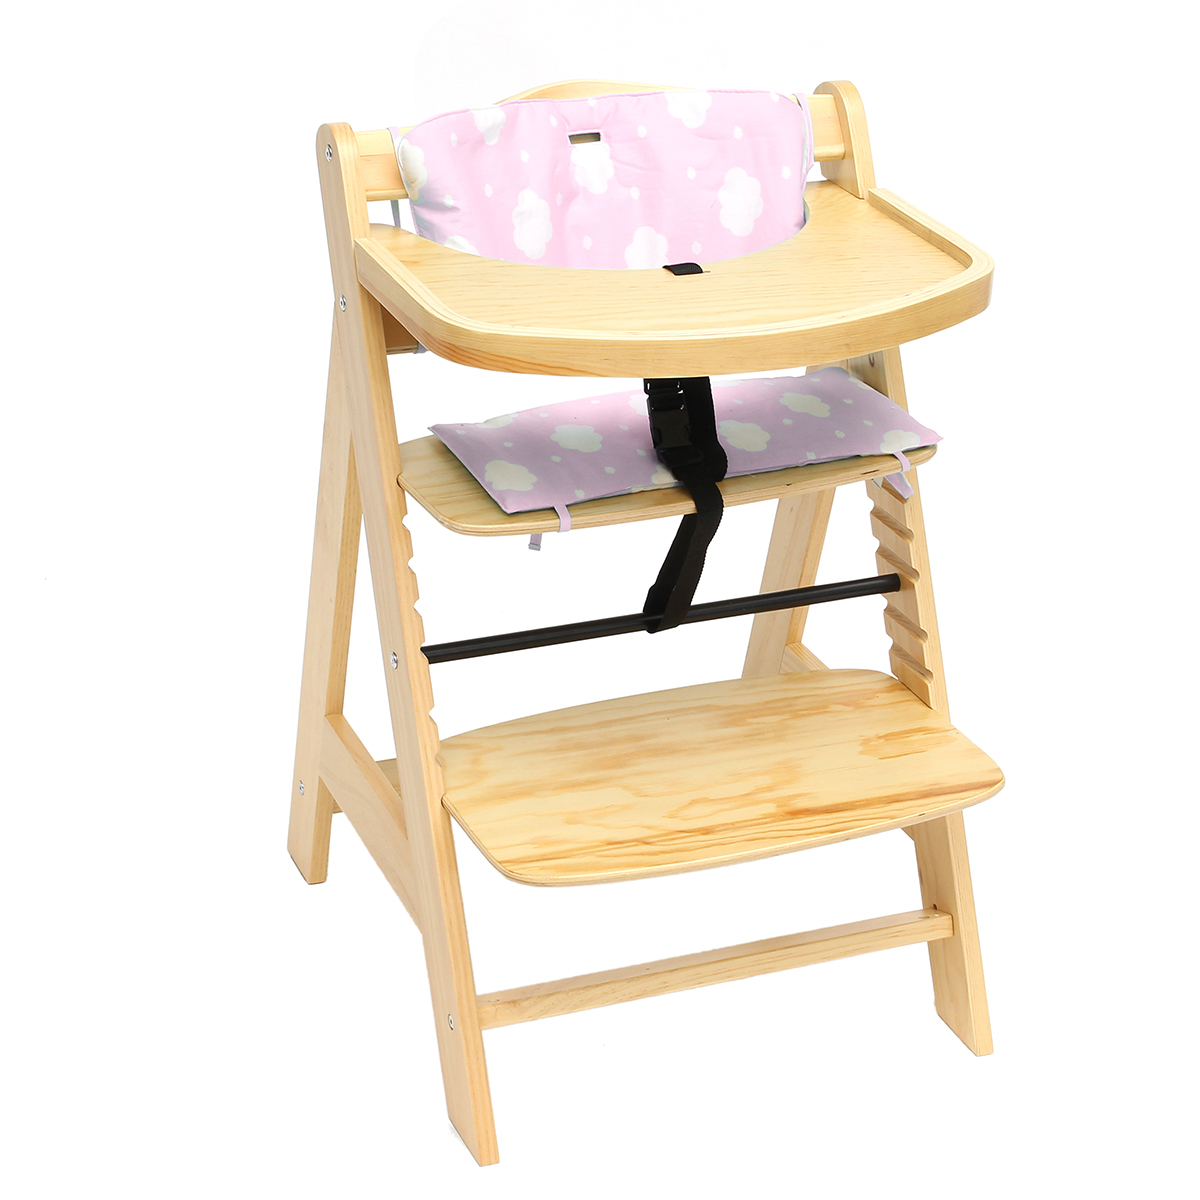 3 In 1 High Chair 3 In 1 Baby Wooden High Chair Convertible Table Seat